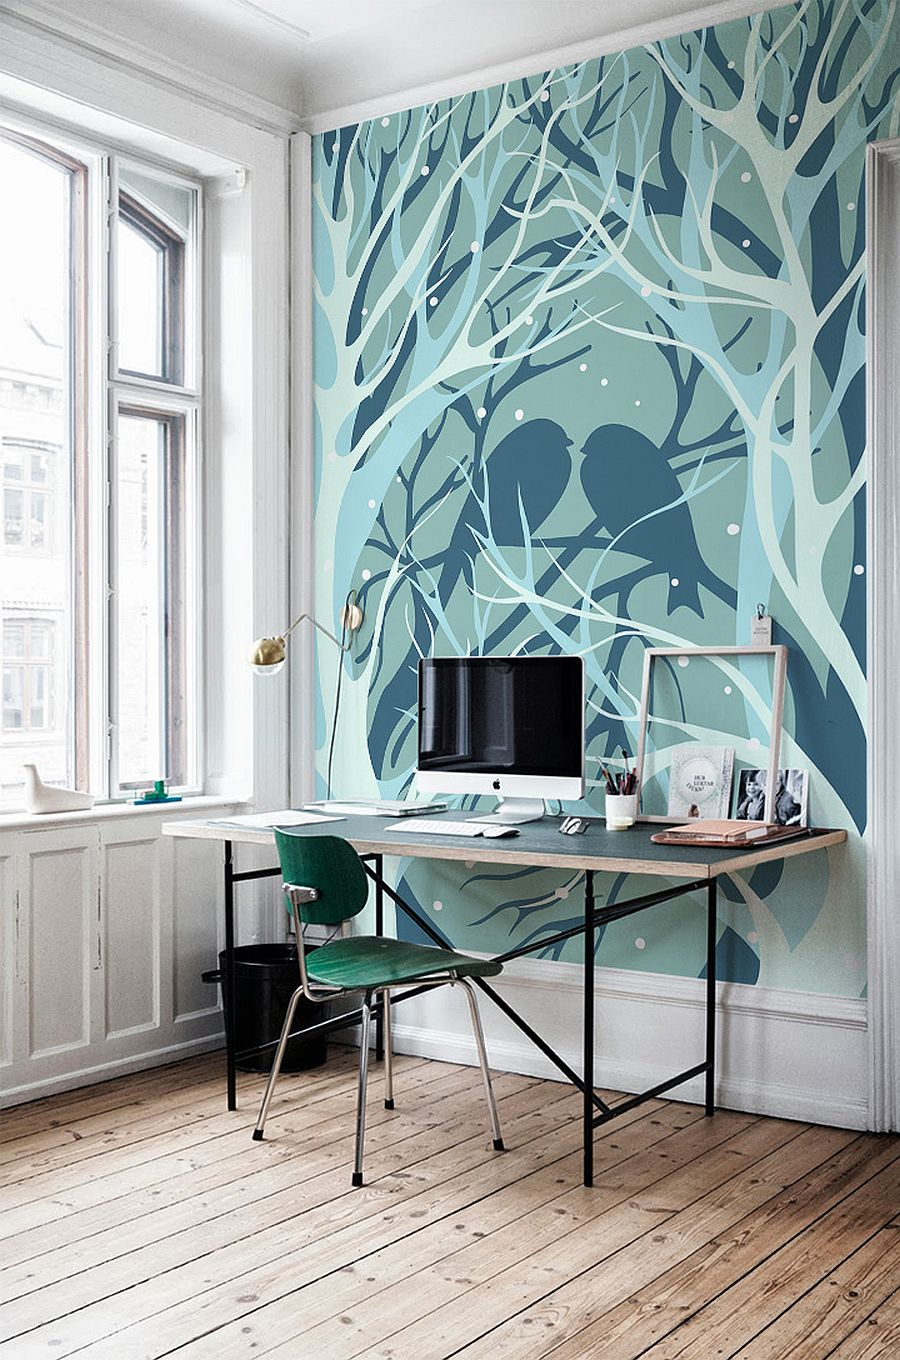 birds-and-trees-wall-mural